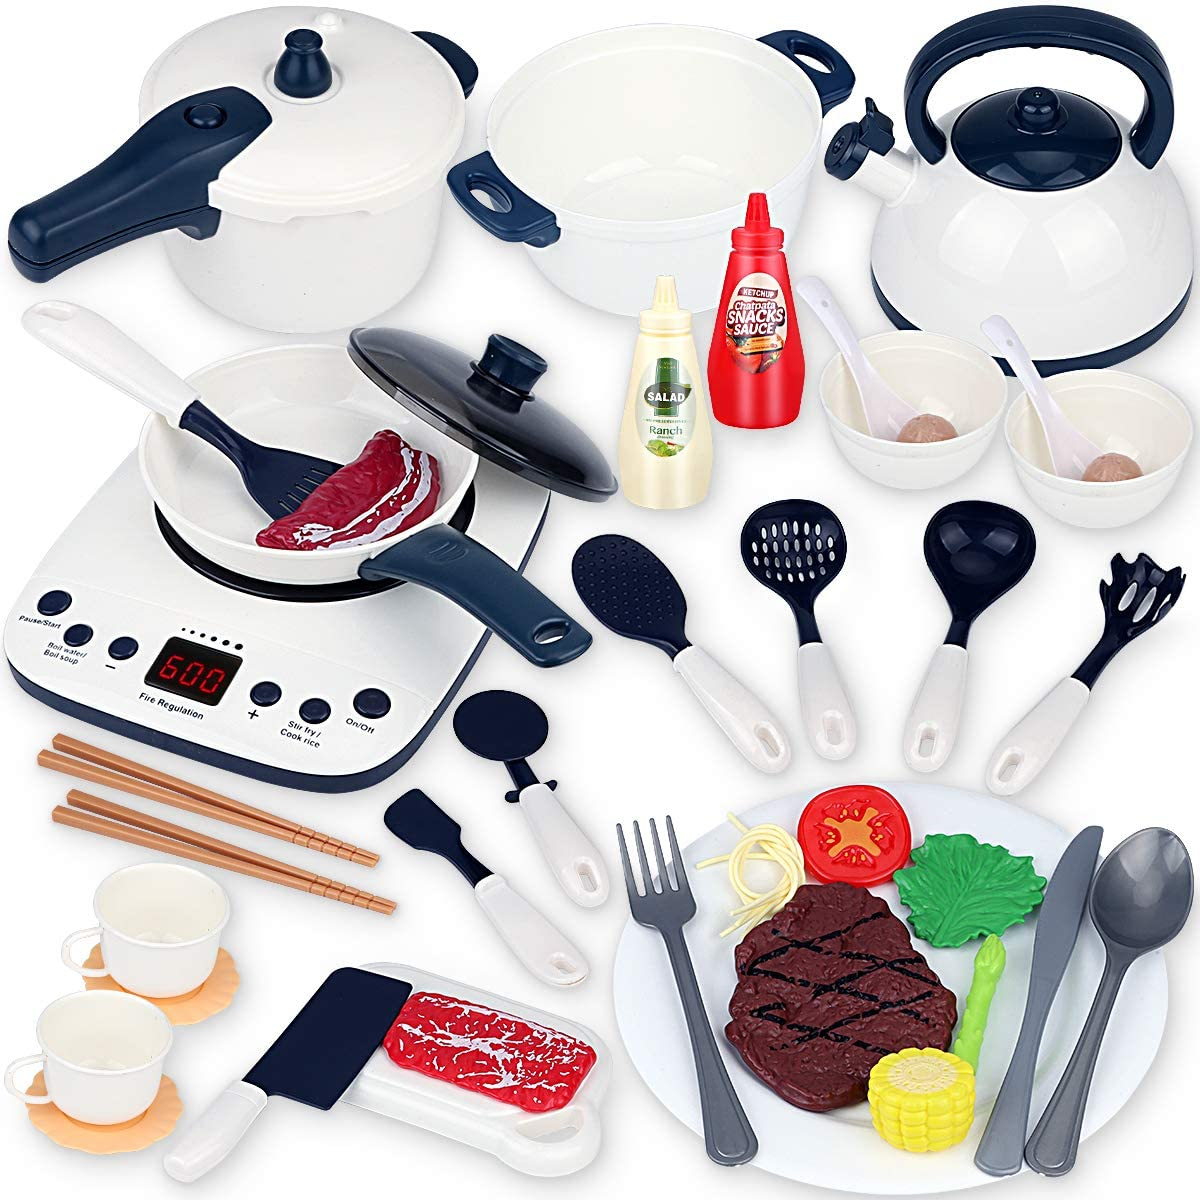 Boogem 40PCS Kids Kitchen Play Toys Set, Kitchen Pretend Toys with Induction Cooktop, Cooking Utensils, Pressure Pots and Pans Cookware Playset, Learning Gift for Toddlers Baby Girls Boys